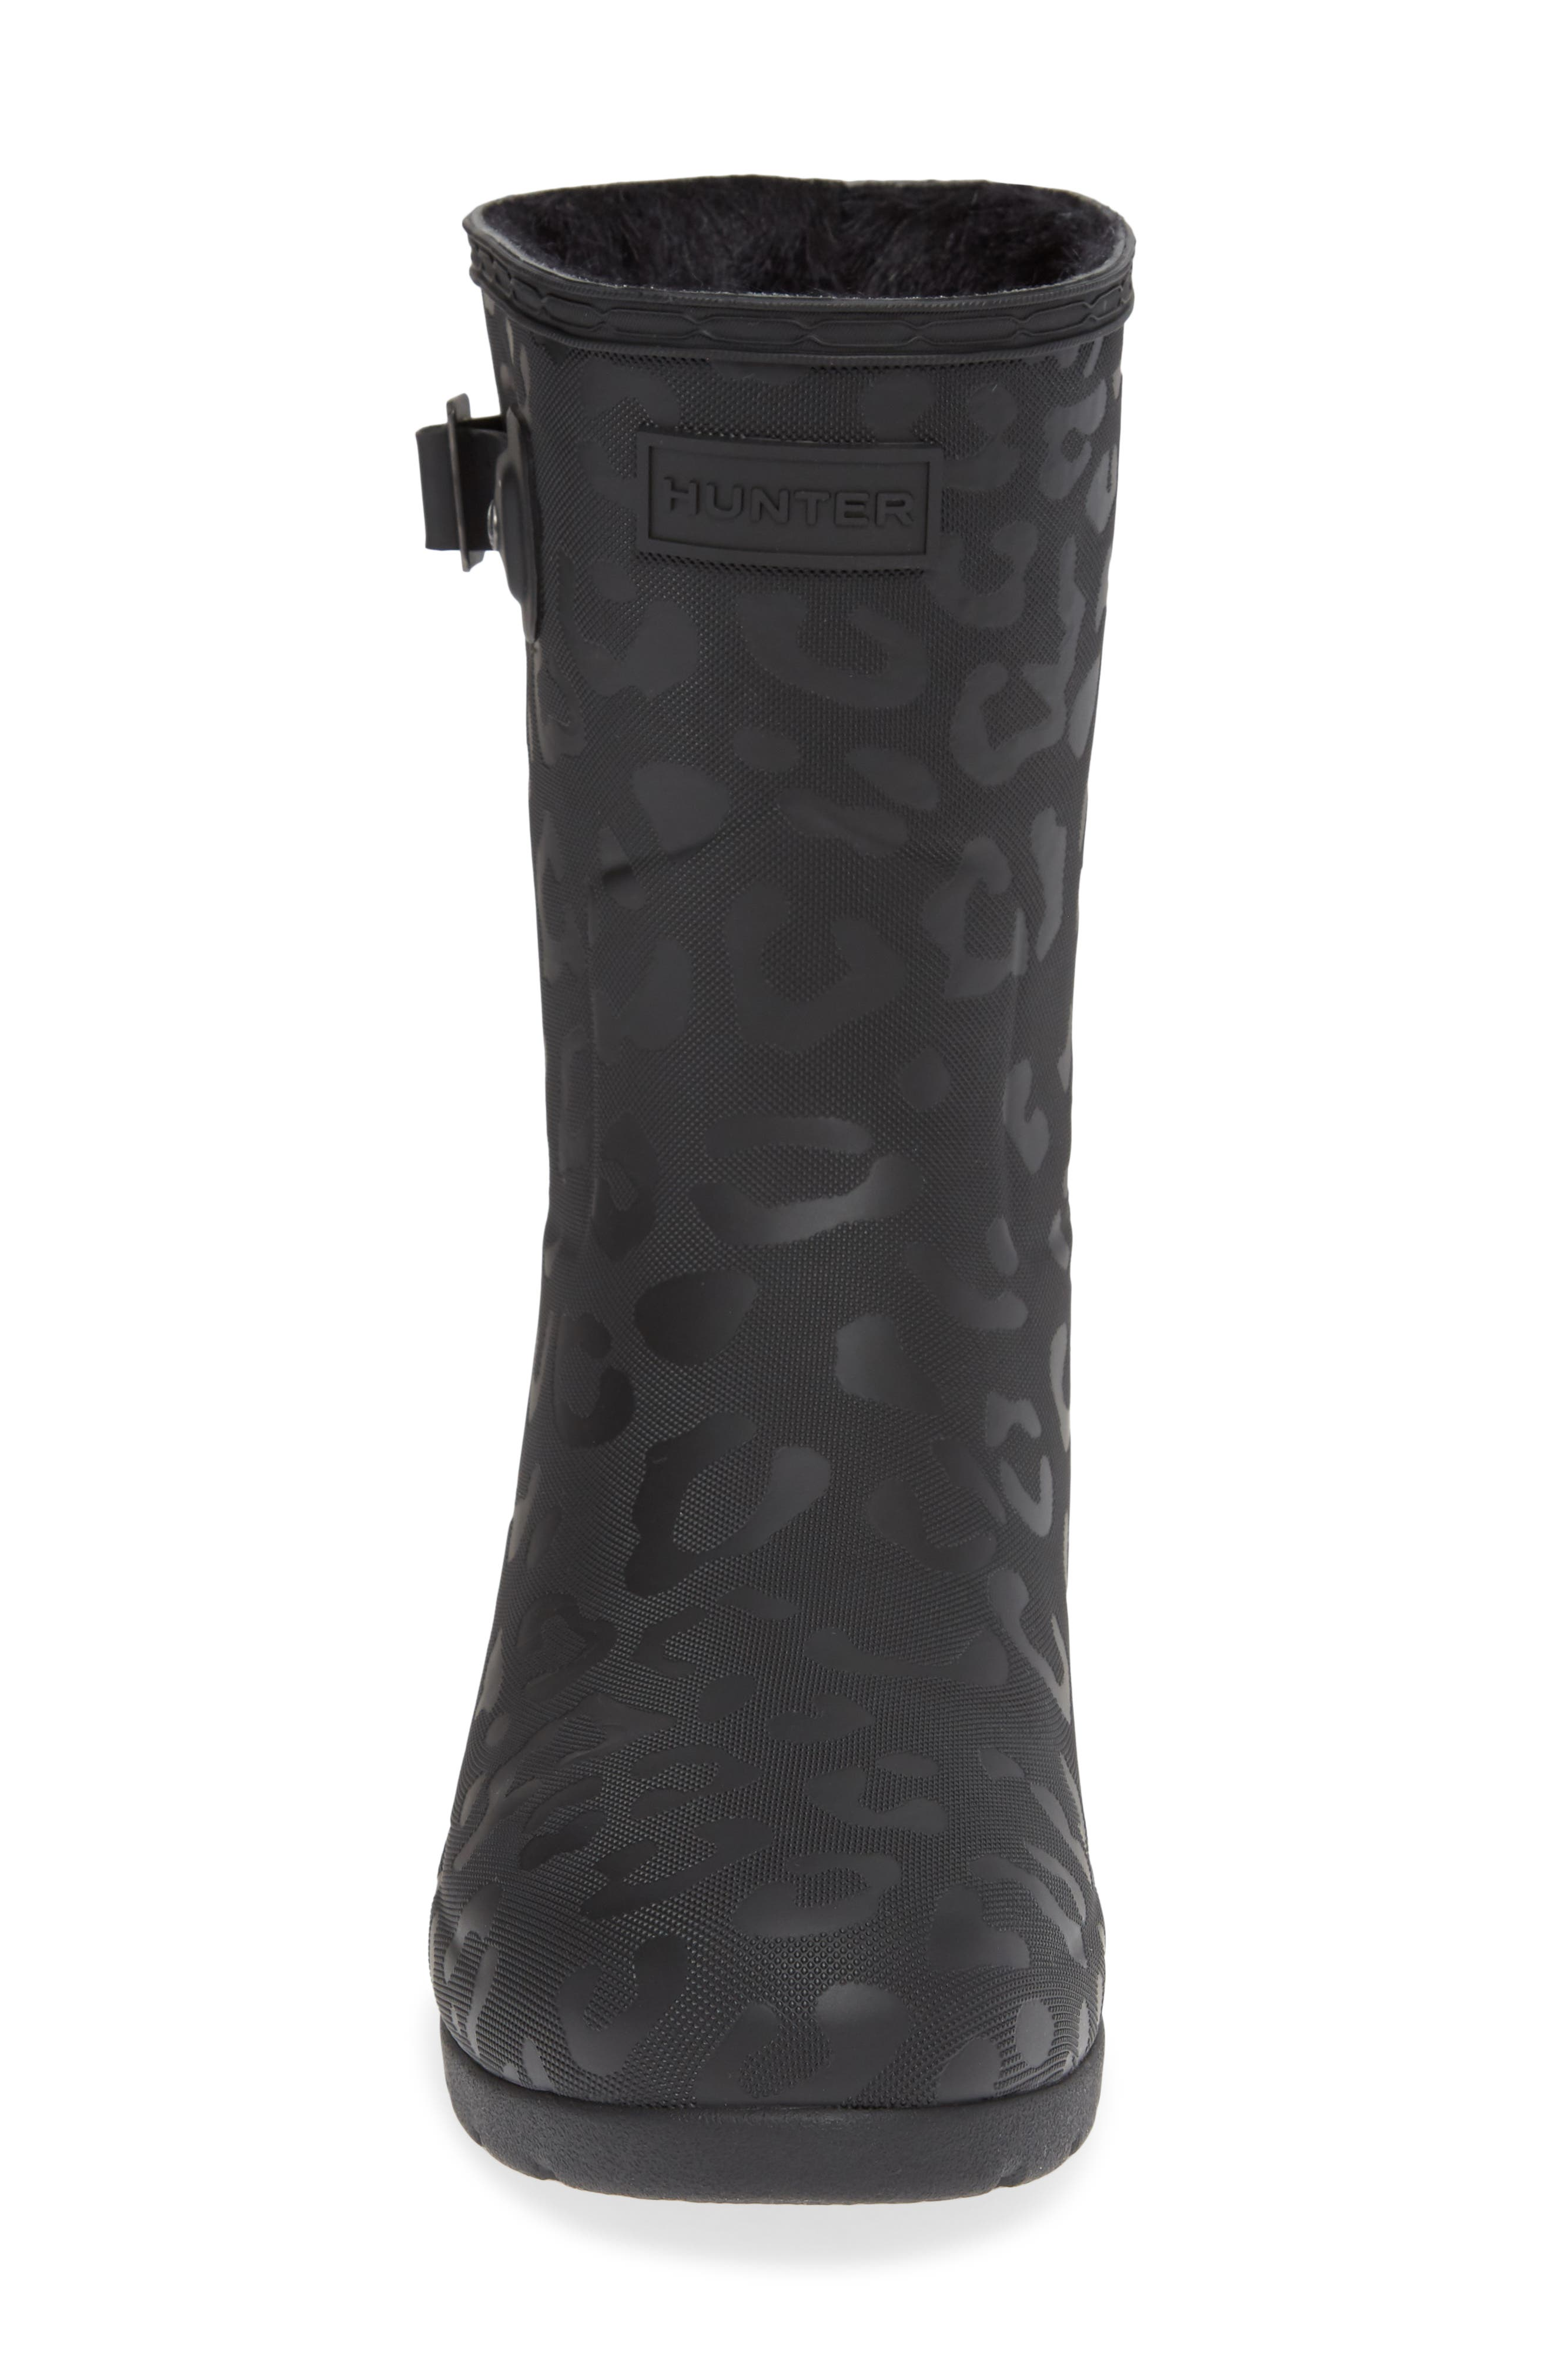 HUNTER,                             Original Insulated Refined Short Rain Boot,                             Alternate thumbnail 4, color,                             001